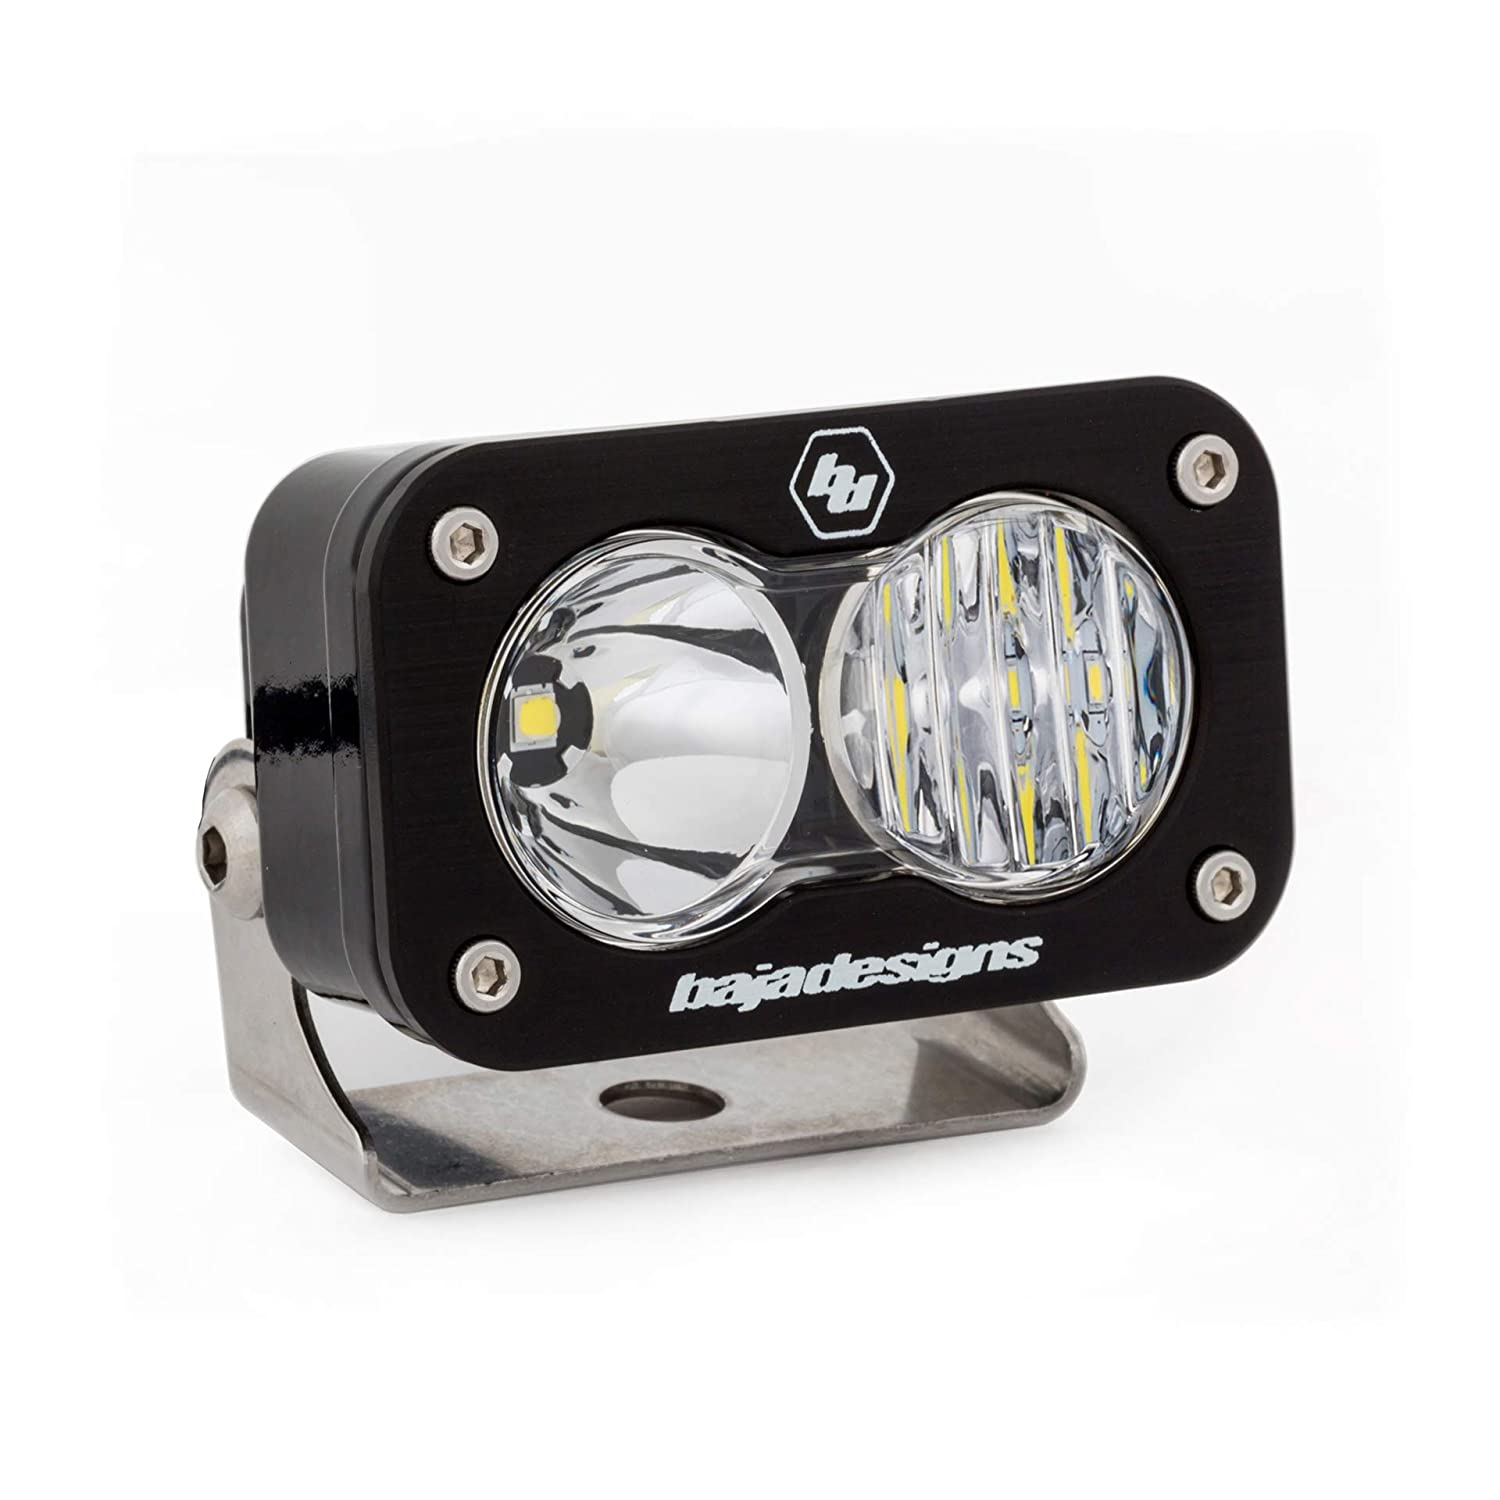 Baja Designs S2 PRO ATV LED Light Driving Combo Pattern